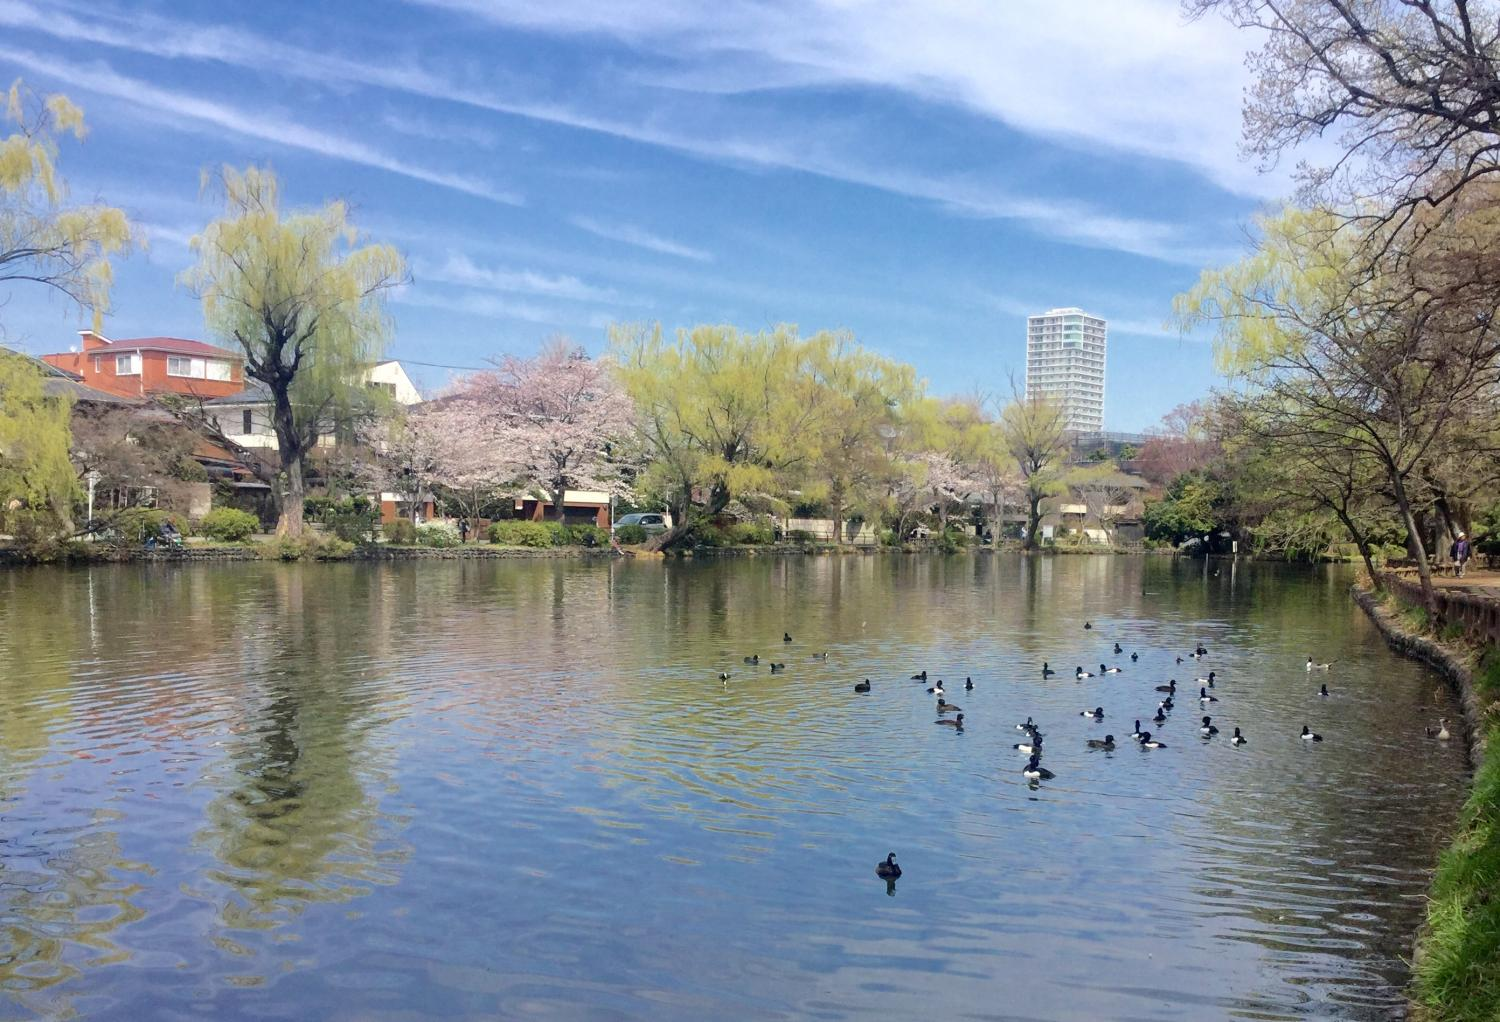 Spotbill ducks are cherry blossom viewing images, too